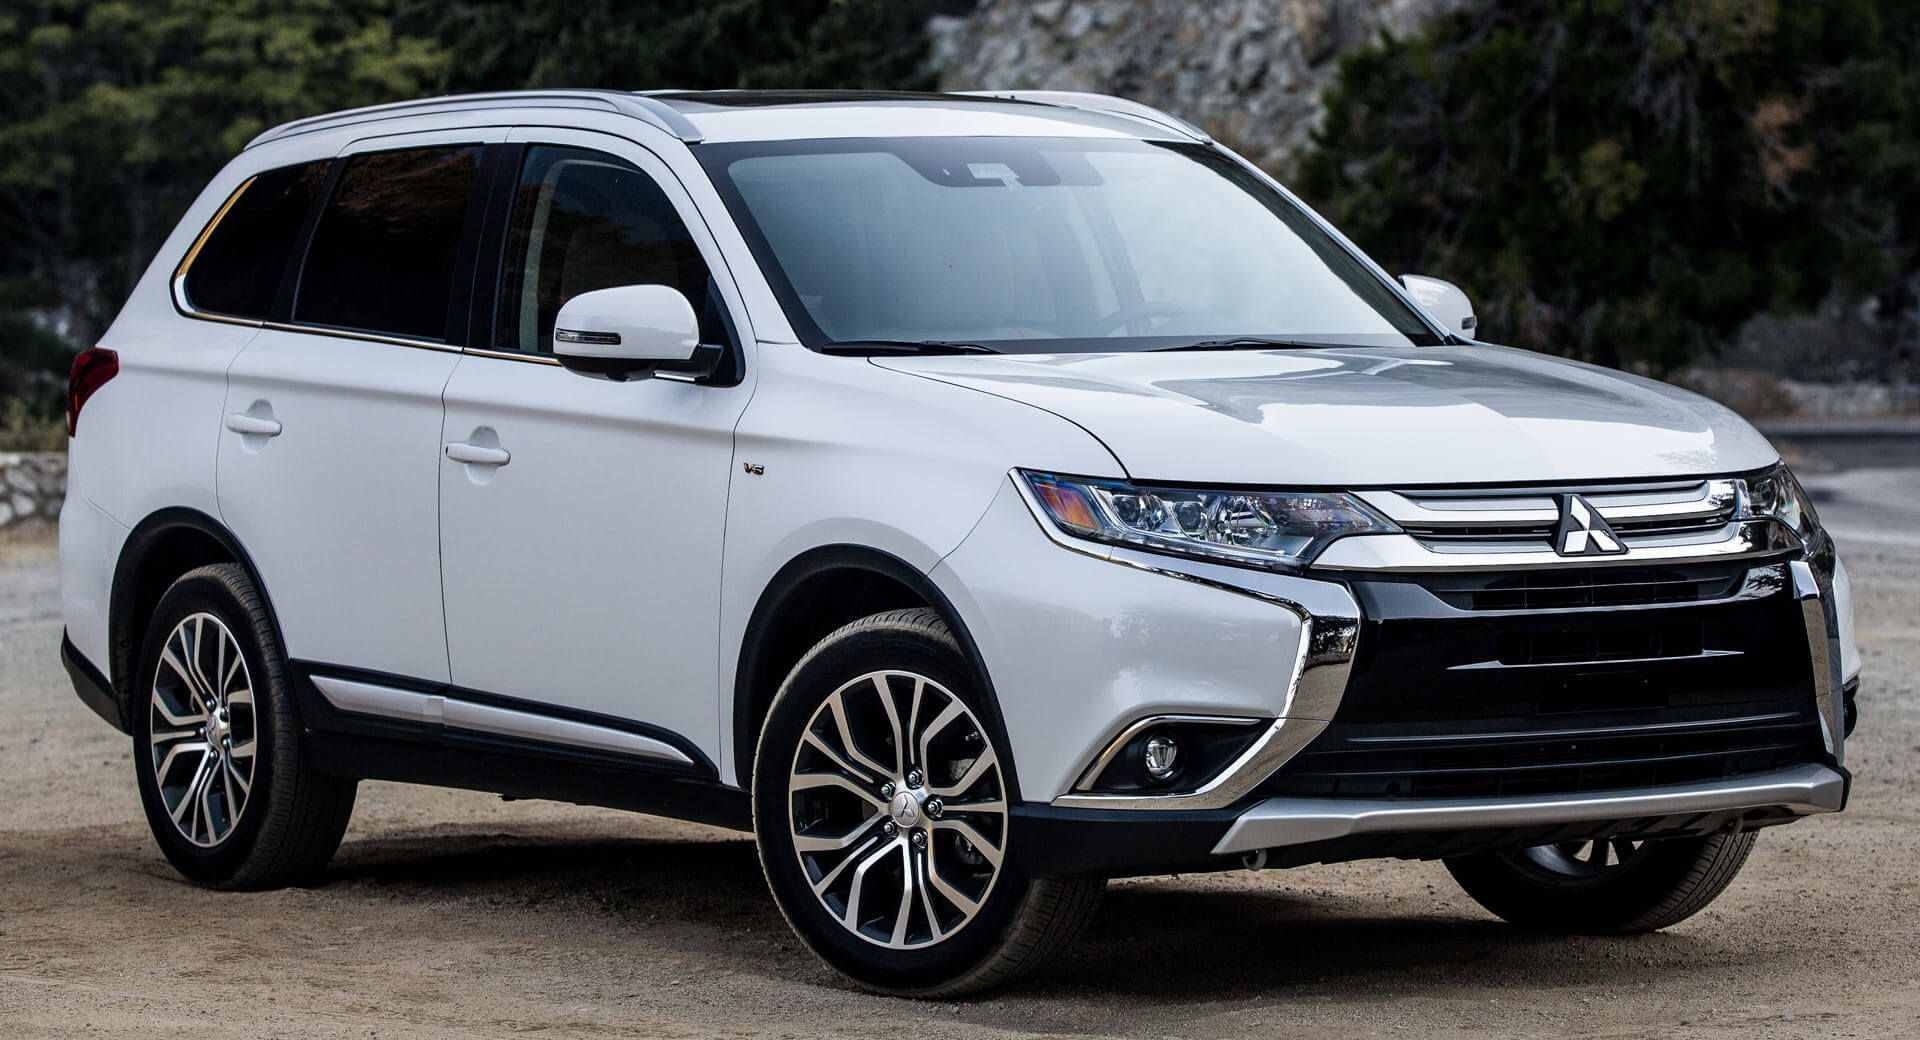 New Mitsubishi Outlander Due In 2021, Could Be Based On